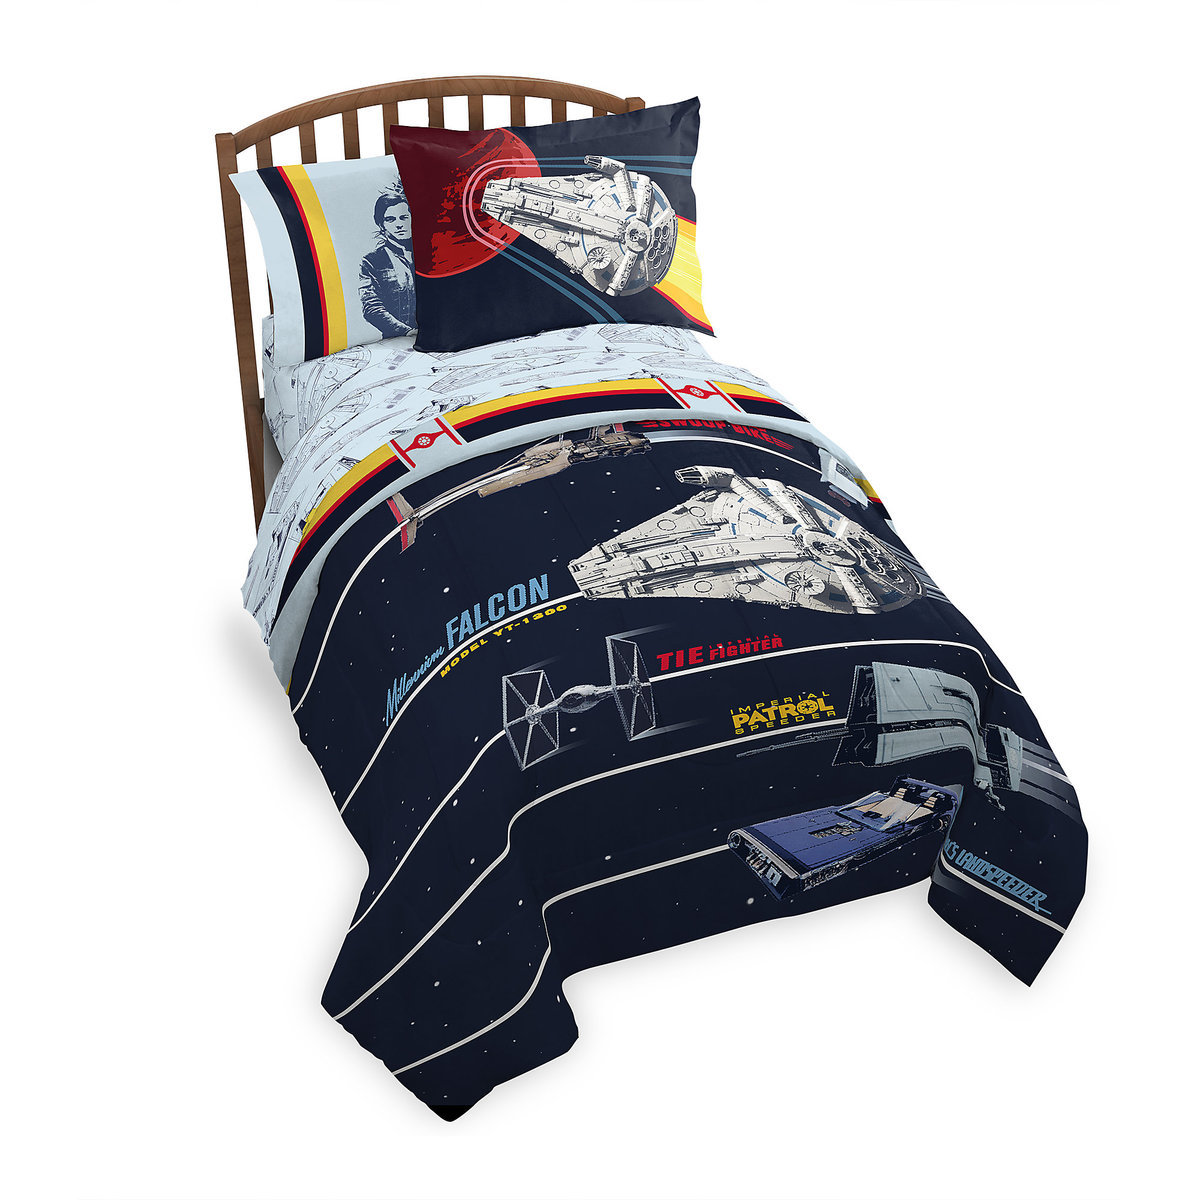 bedspread bedding rebels wars target lego birds ondeals twin deals set sheets k com pottery nice milleniumfalconqbed angry serene starwars collection queen full barn sheet mevujc sets preview star darth fullqueen size girls magnificent dk il vader comforter